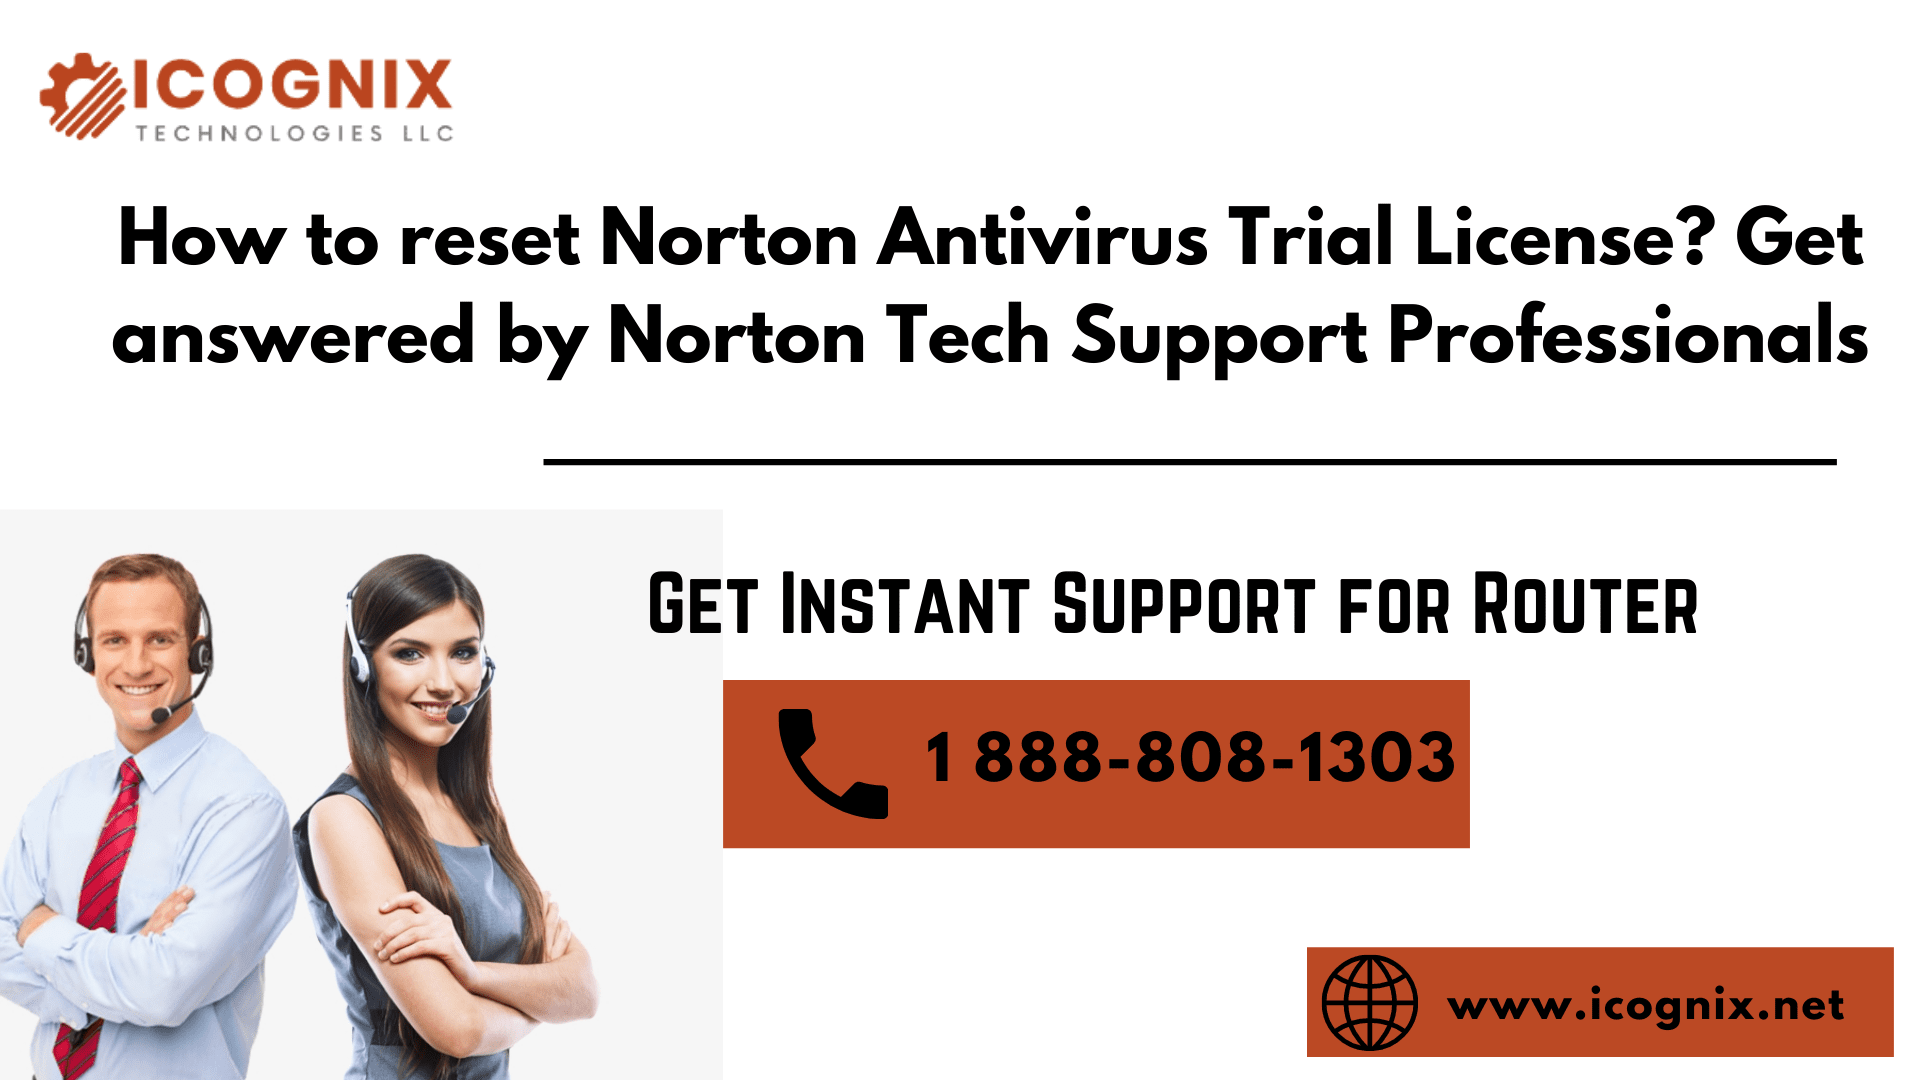 How to reset Norton Antivirus Trial License? Get answered by Norton Tech Support Professionals